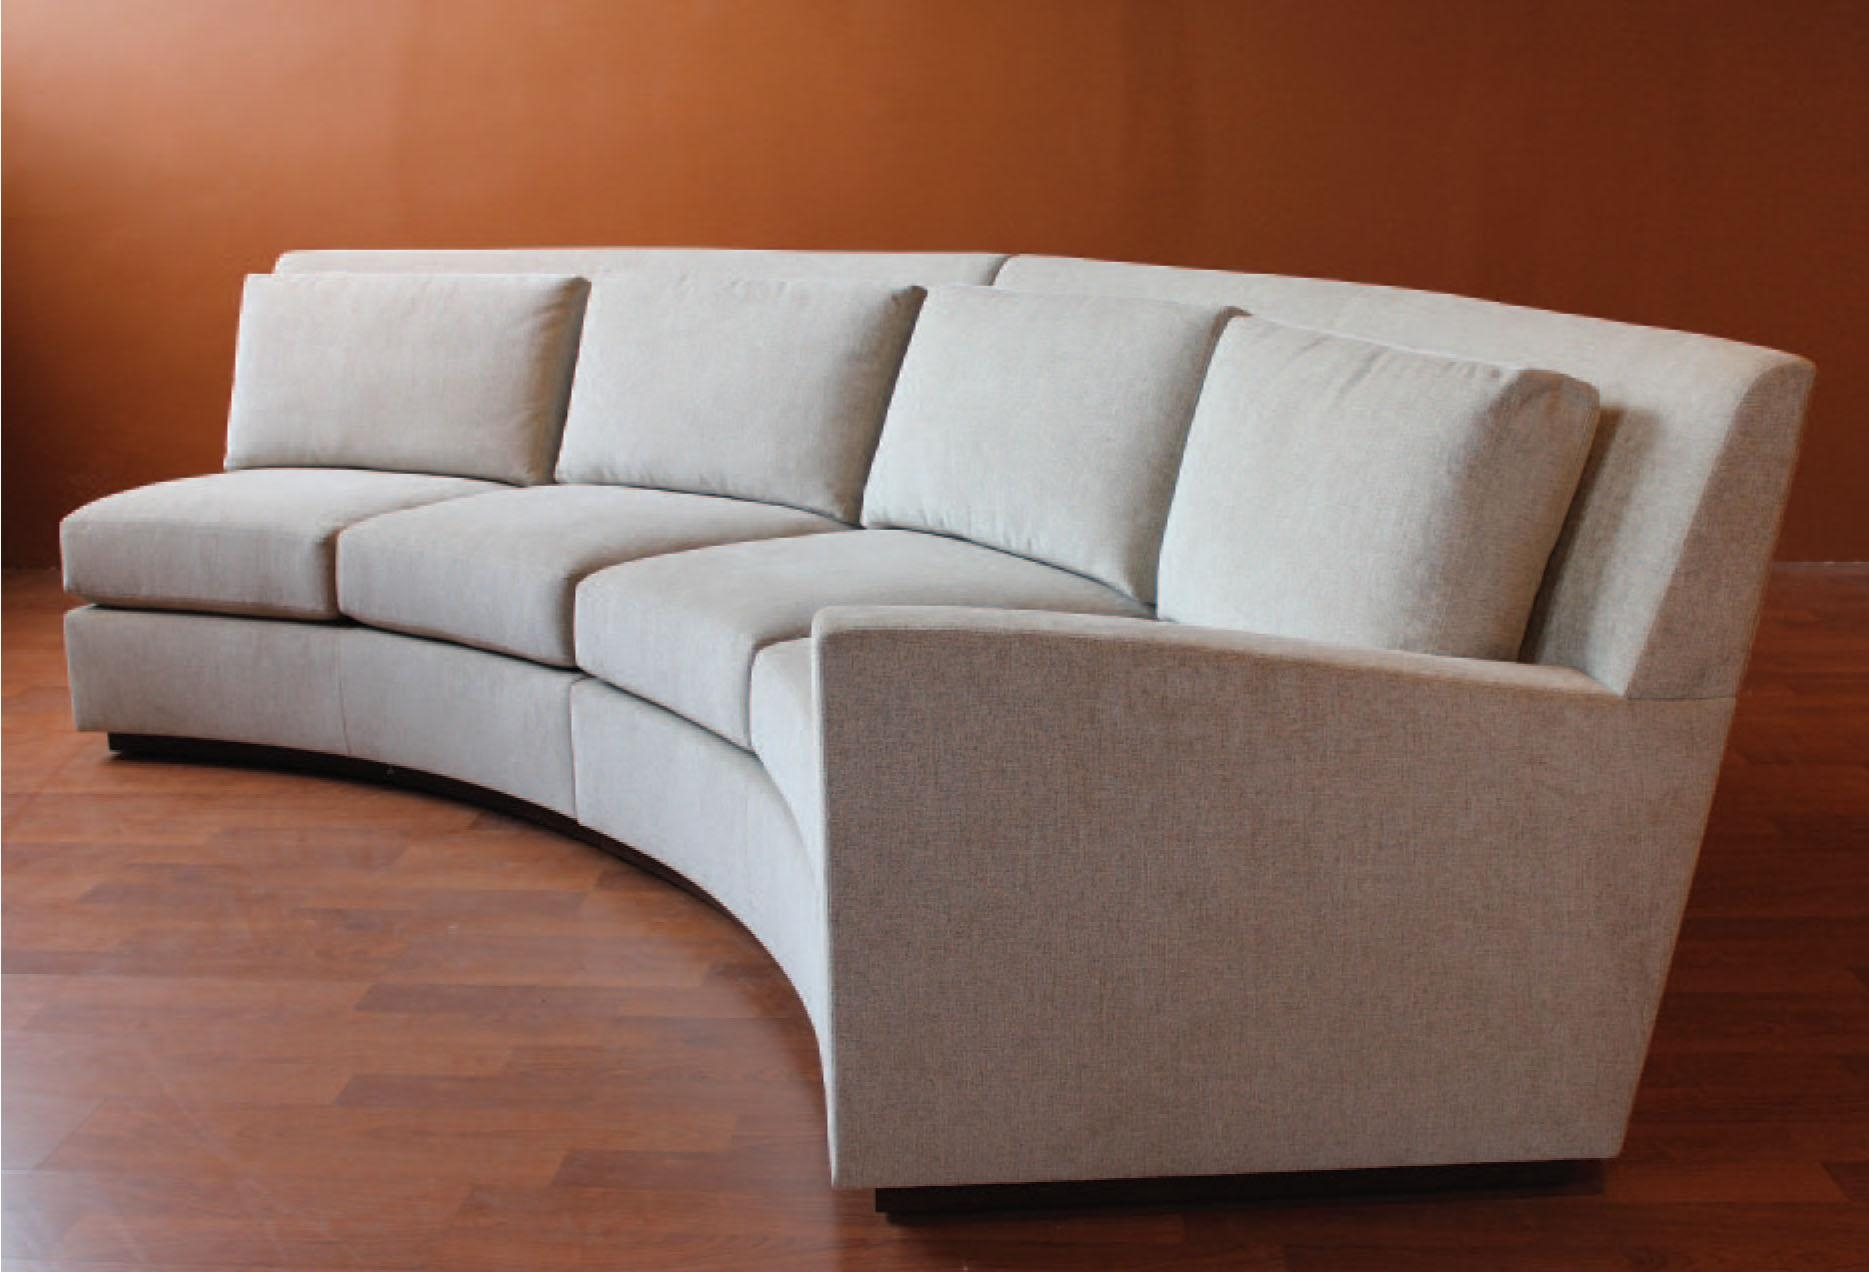 Sofas Center : Curved Sectional Sofa Sofas Small Outdoor Within Small Curved Sectional Sofas (Image 18 of 20)